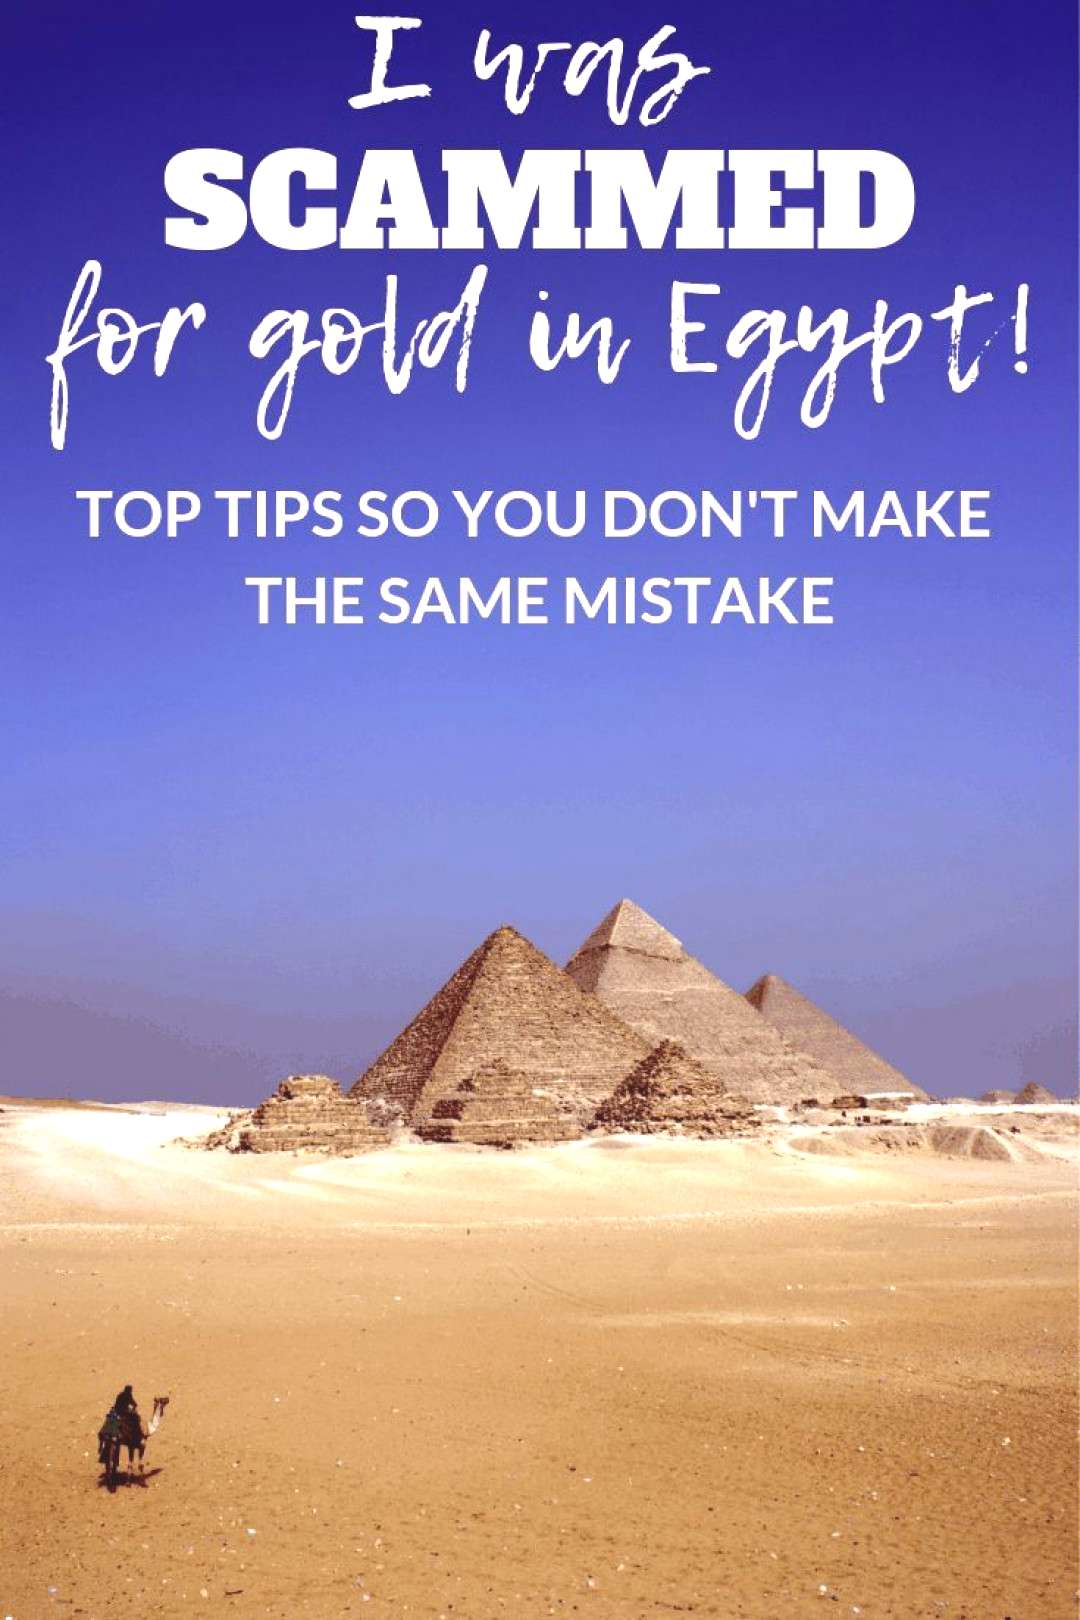 9 TIPS FOR BUYING GOLD IN EGYPT FROM A FOOL WHO GOT SCAMMED! - Third Eye Traveller • Solo Female